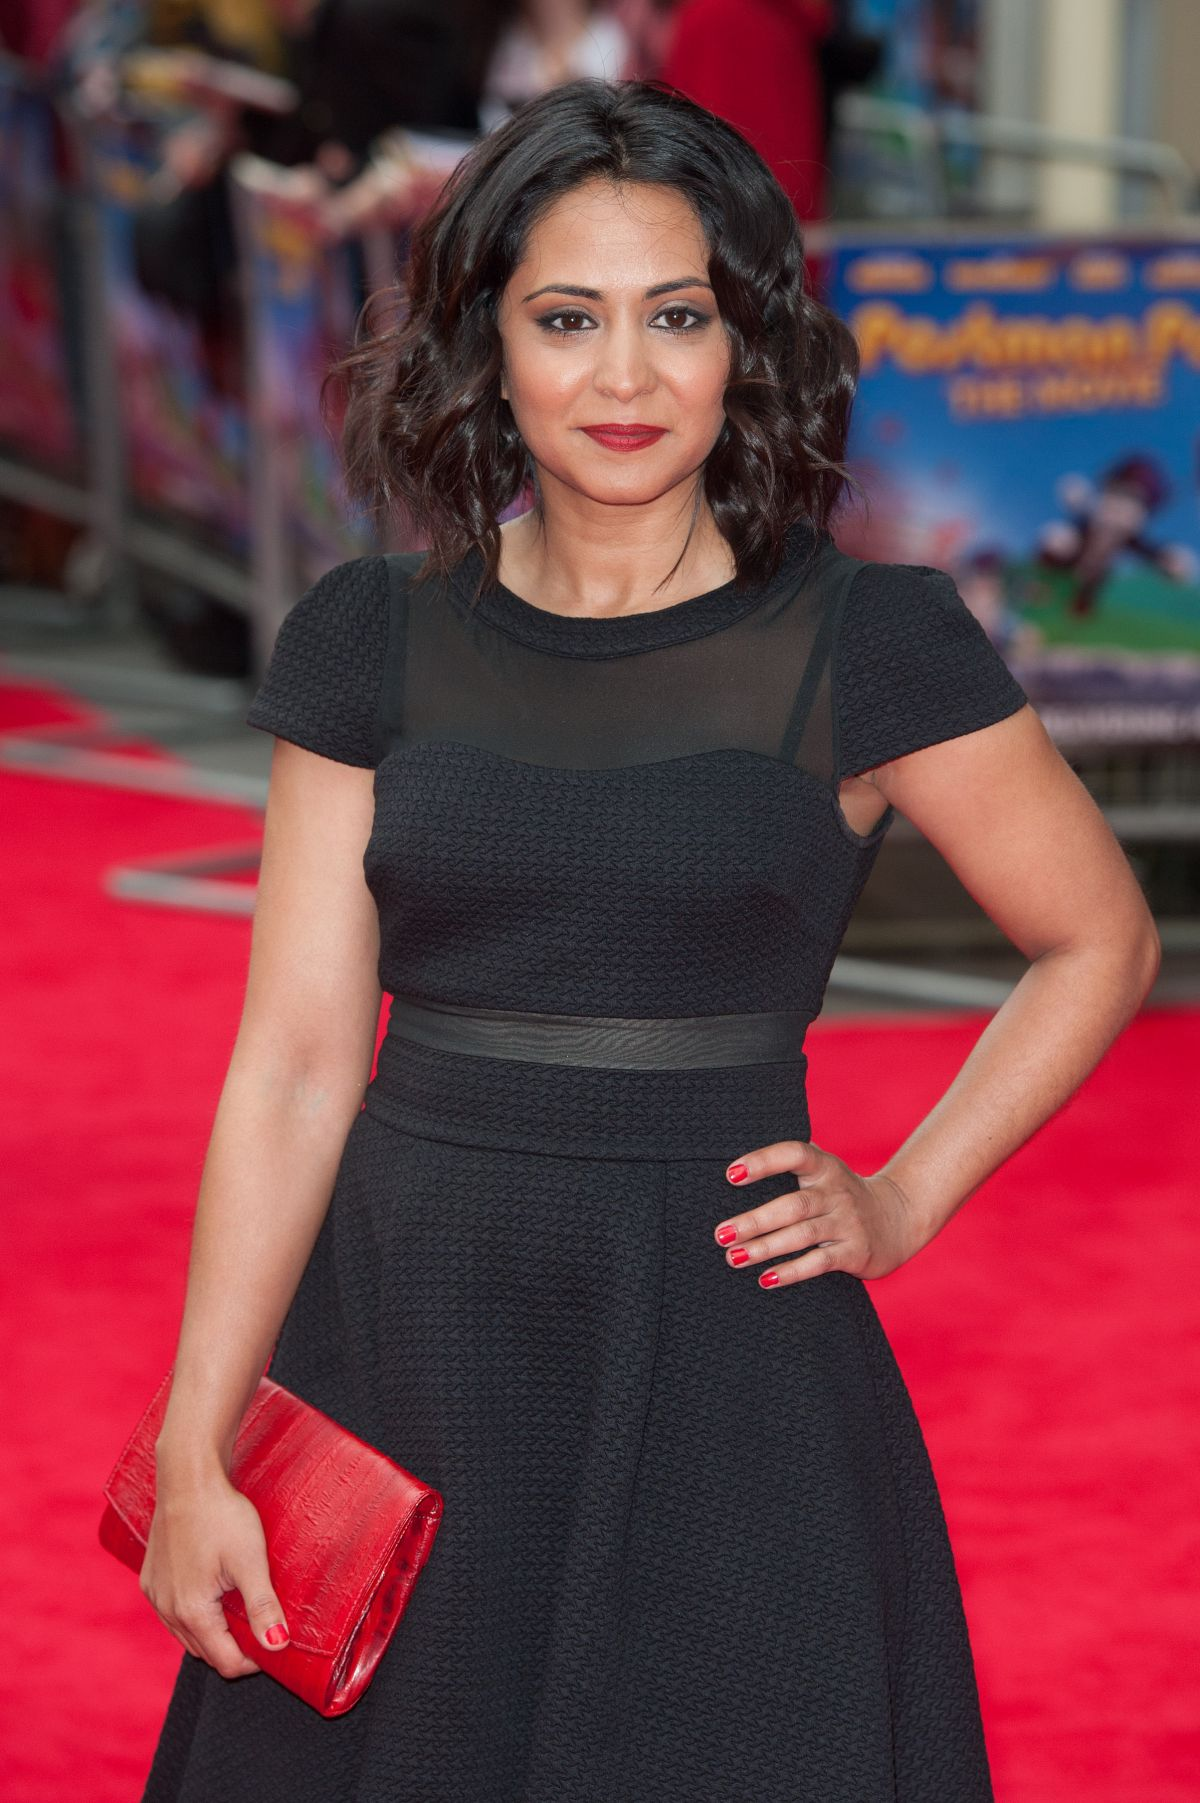 PARMINDER NAGRA at Postman Pat Premiere in London